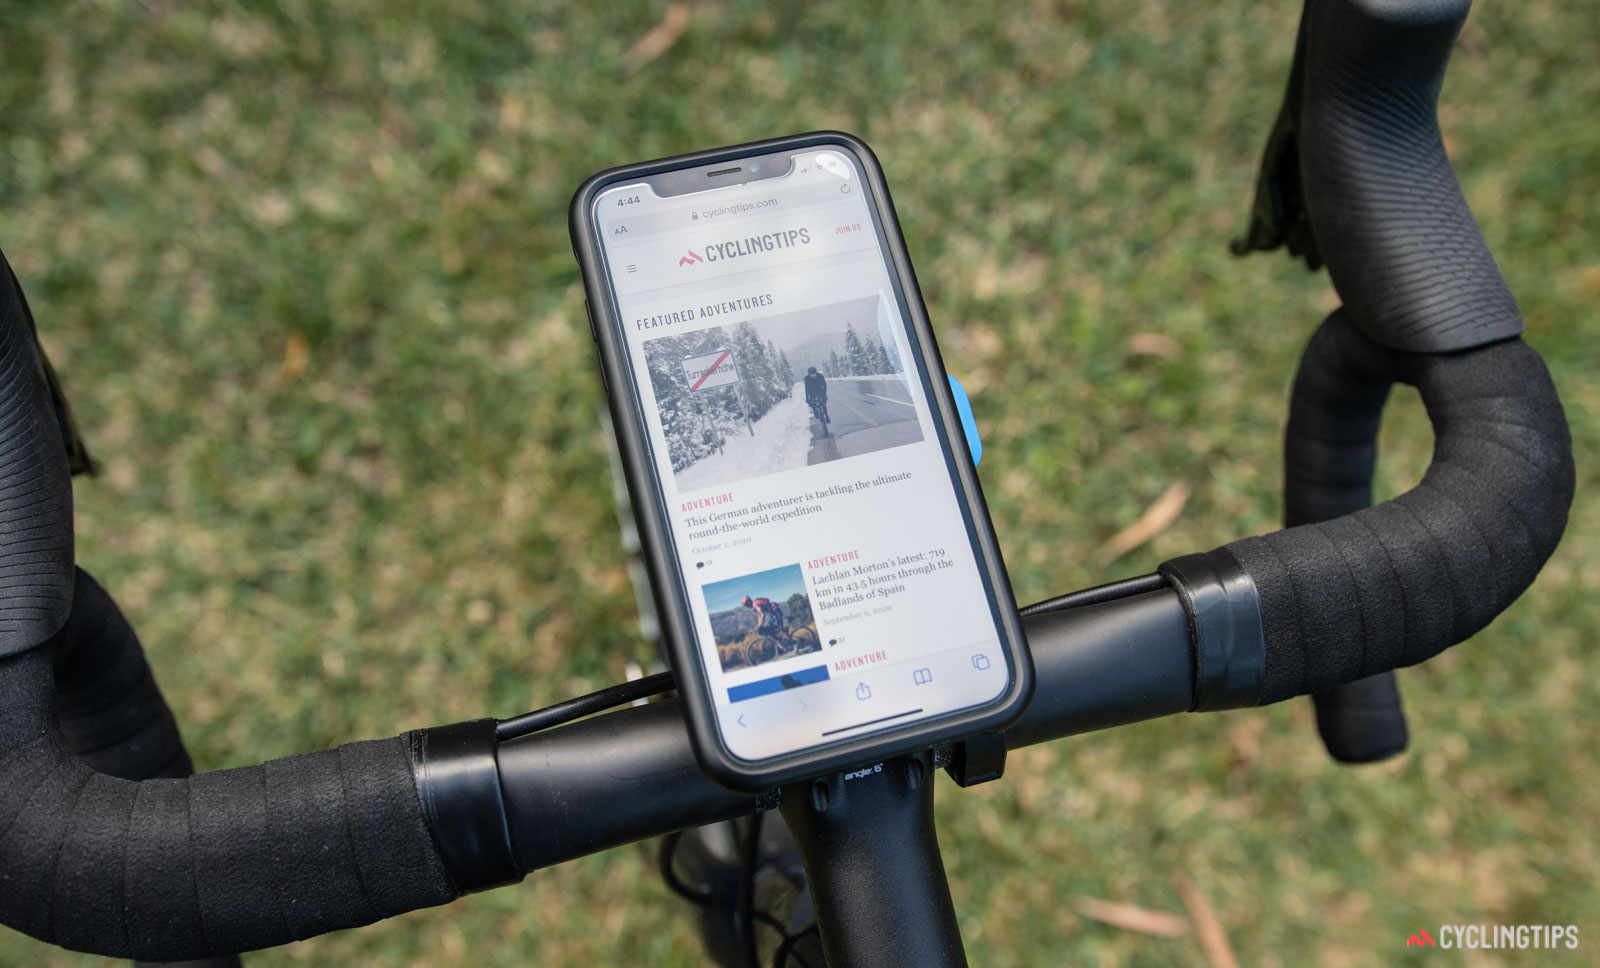 Quad Lock mobile phone mount review: Solid and secure